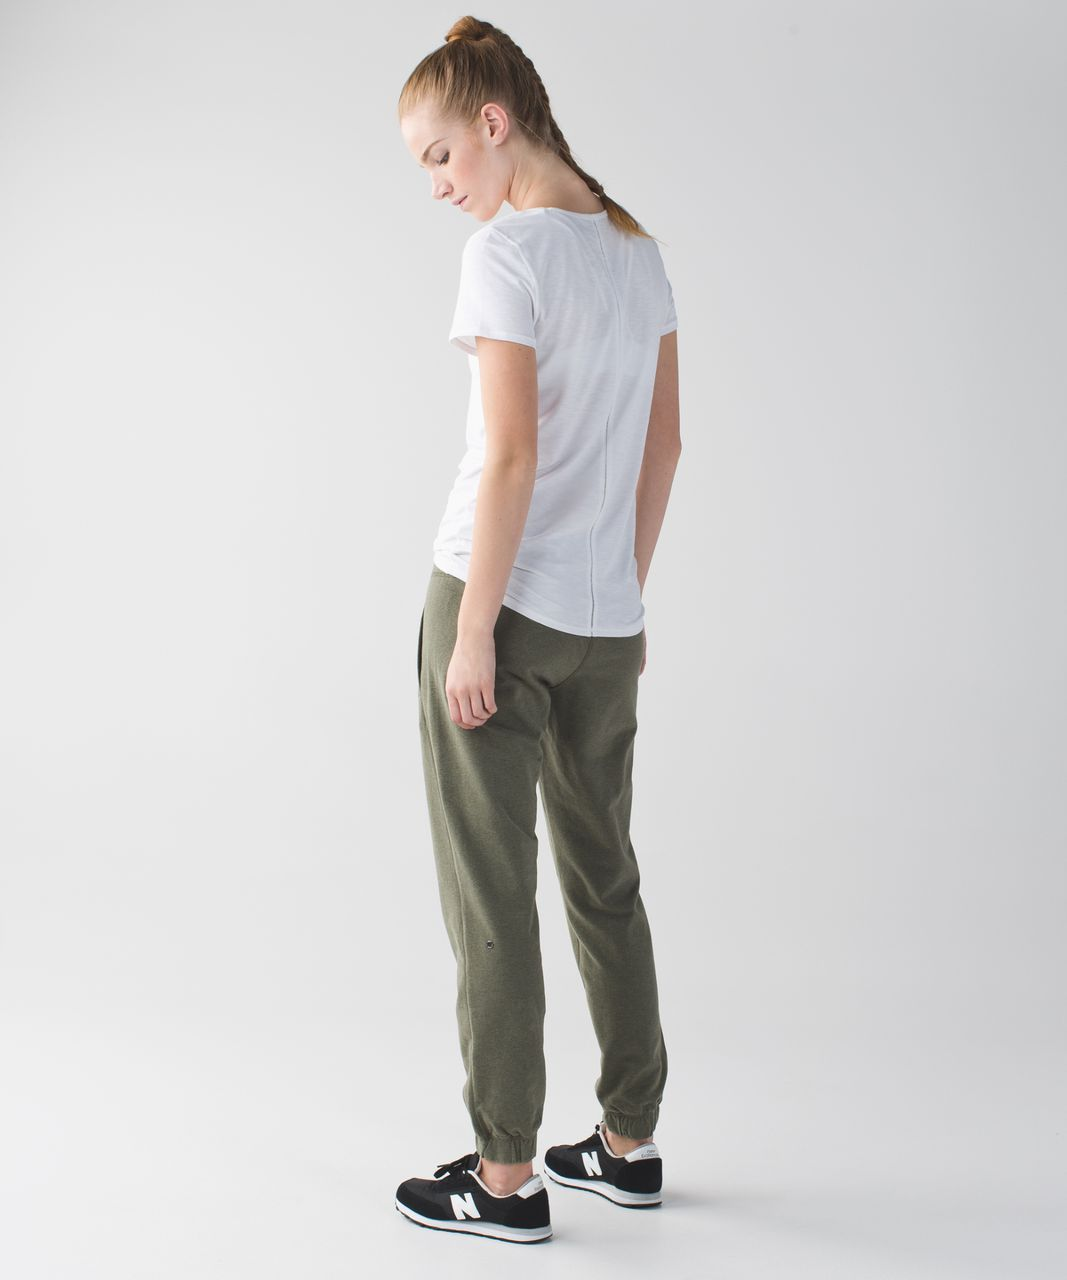 Lululemon Sattva Pant II - Heathered Fatigue Green